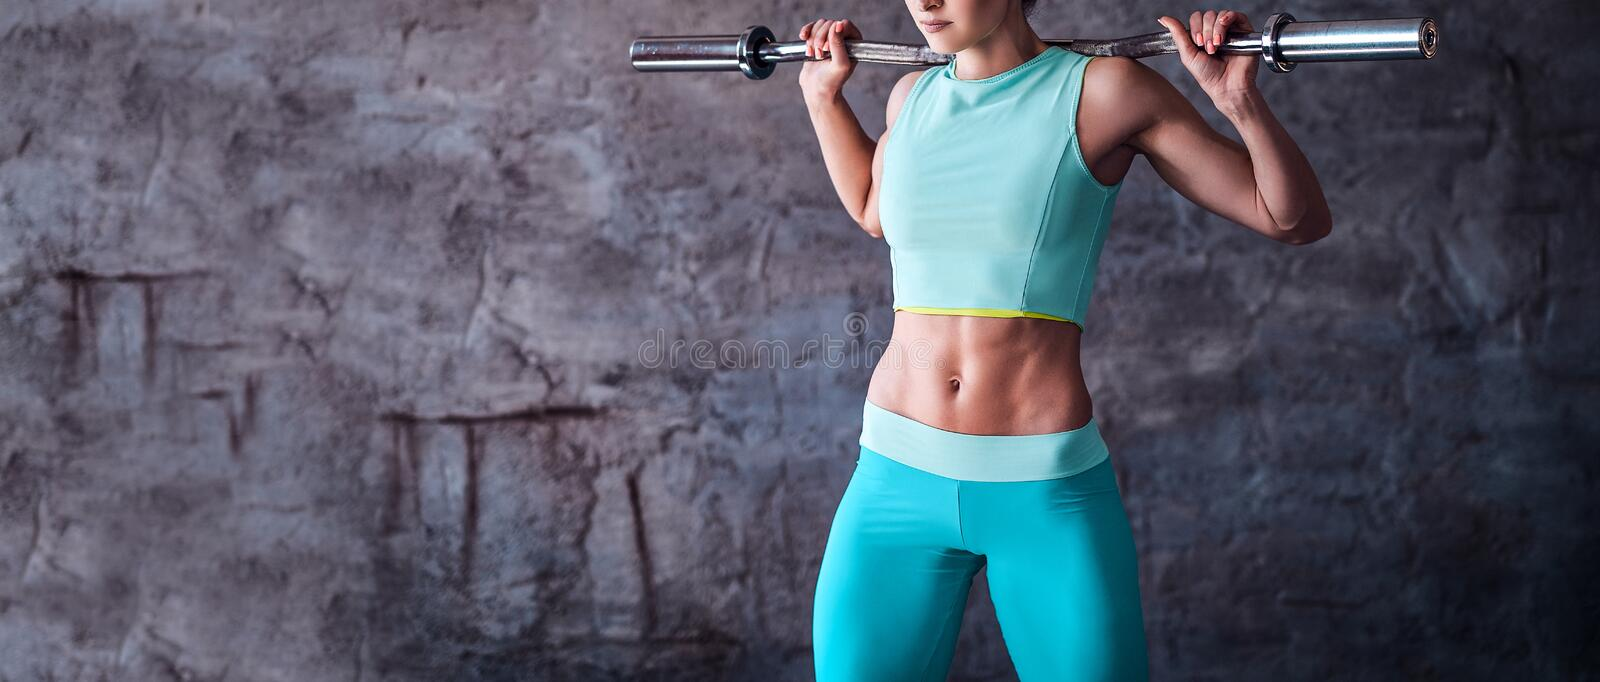 Cropped image of a woman in sportswear workout with a barbell in the gym against a gray wall stock photo